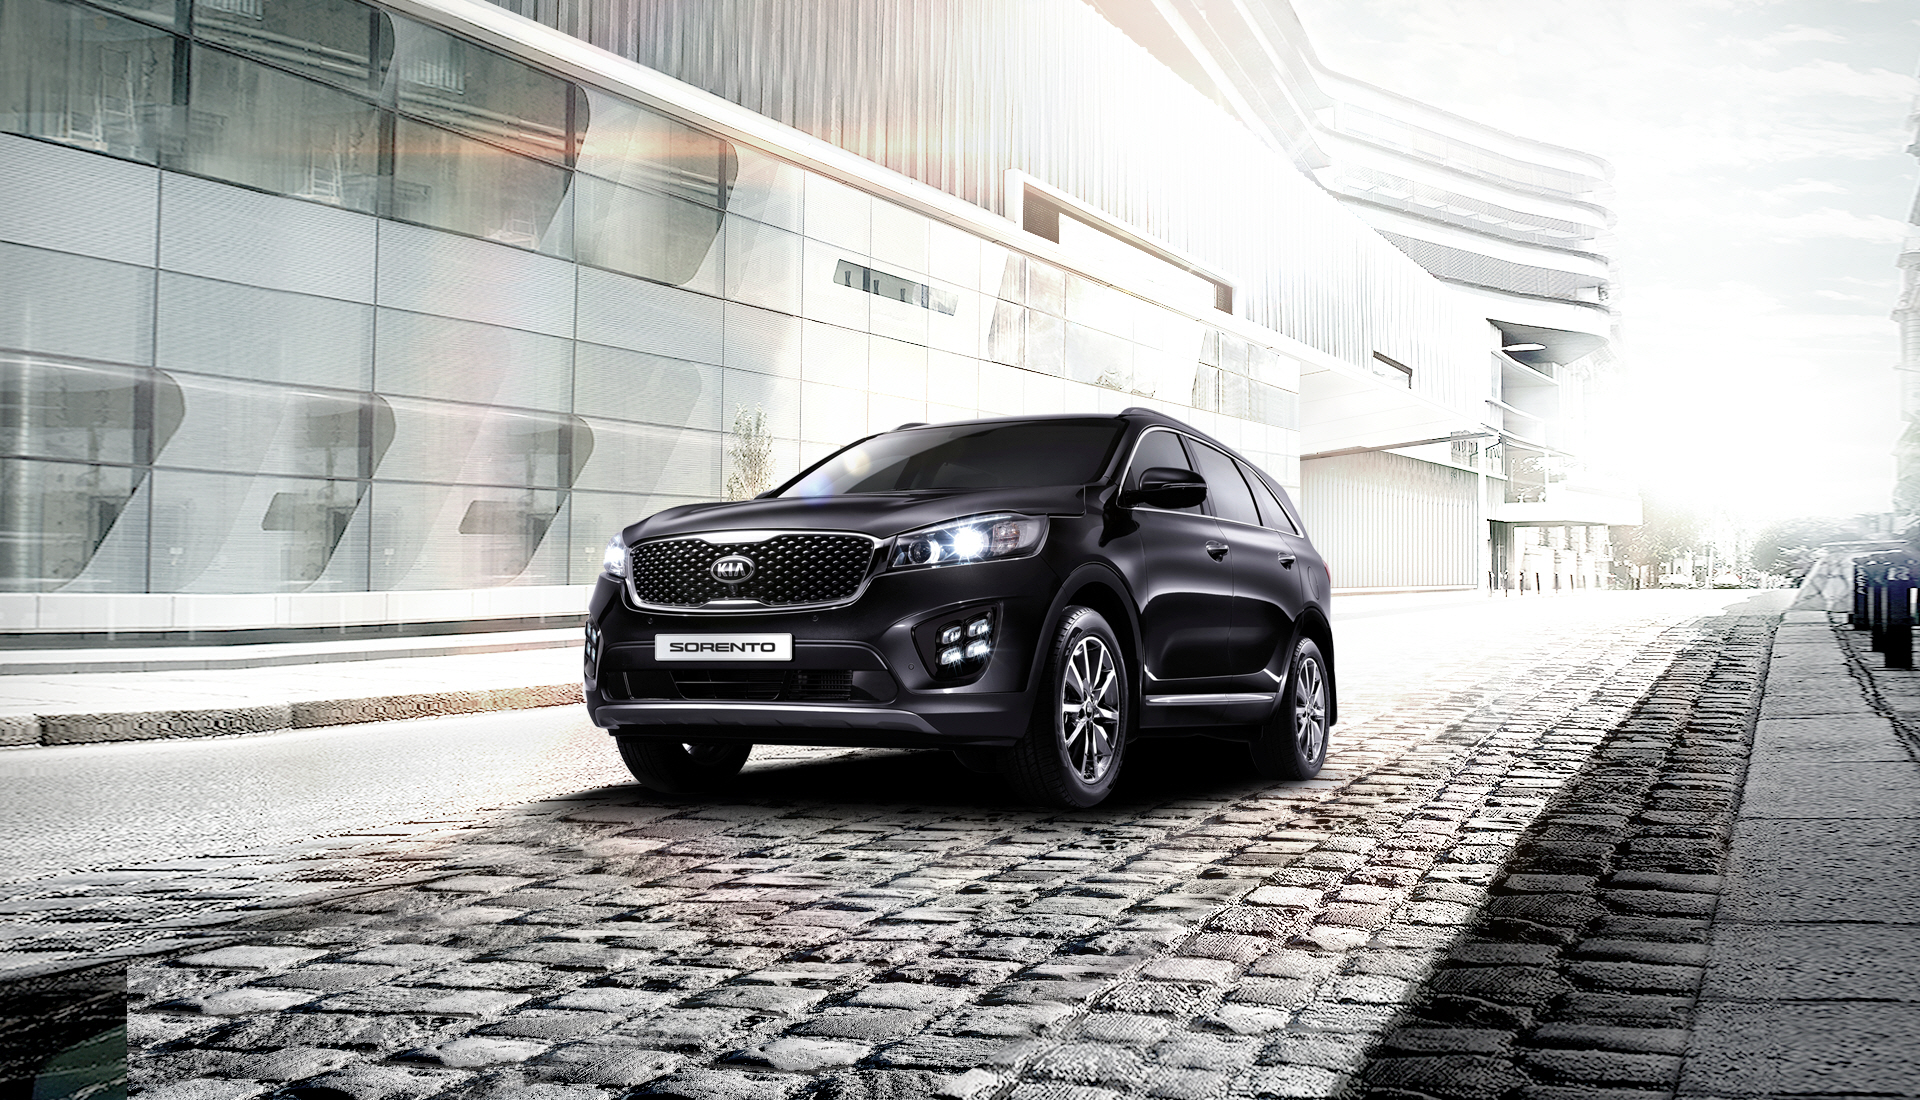 Kia Launched 2016 Sorento for South Korea